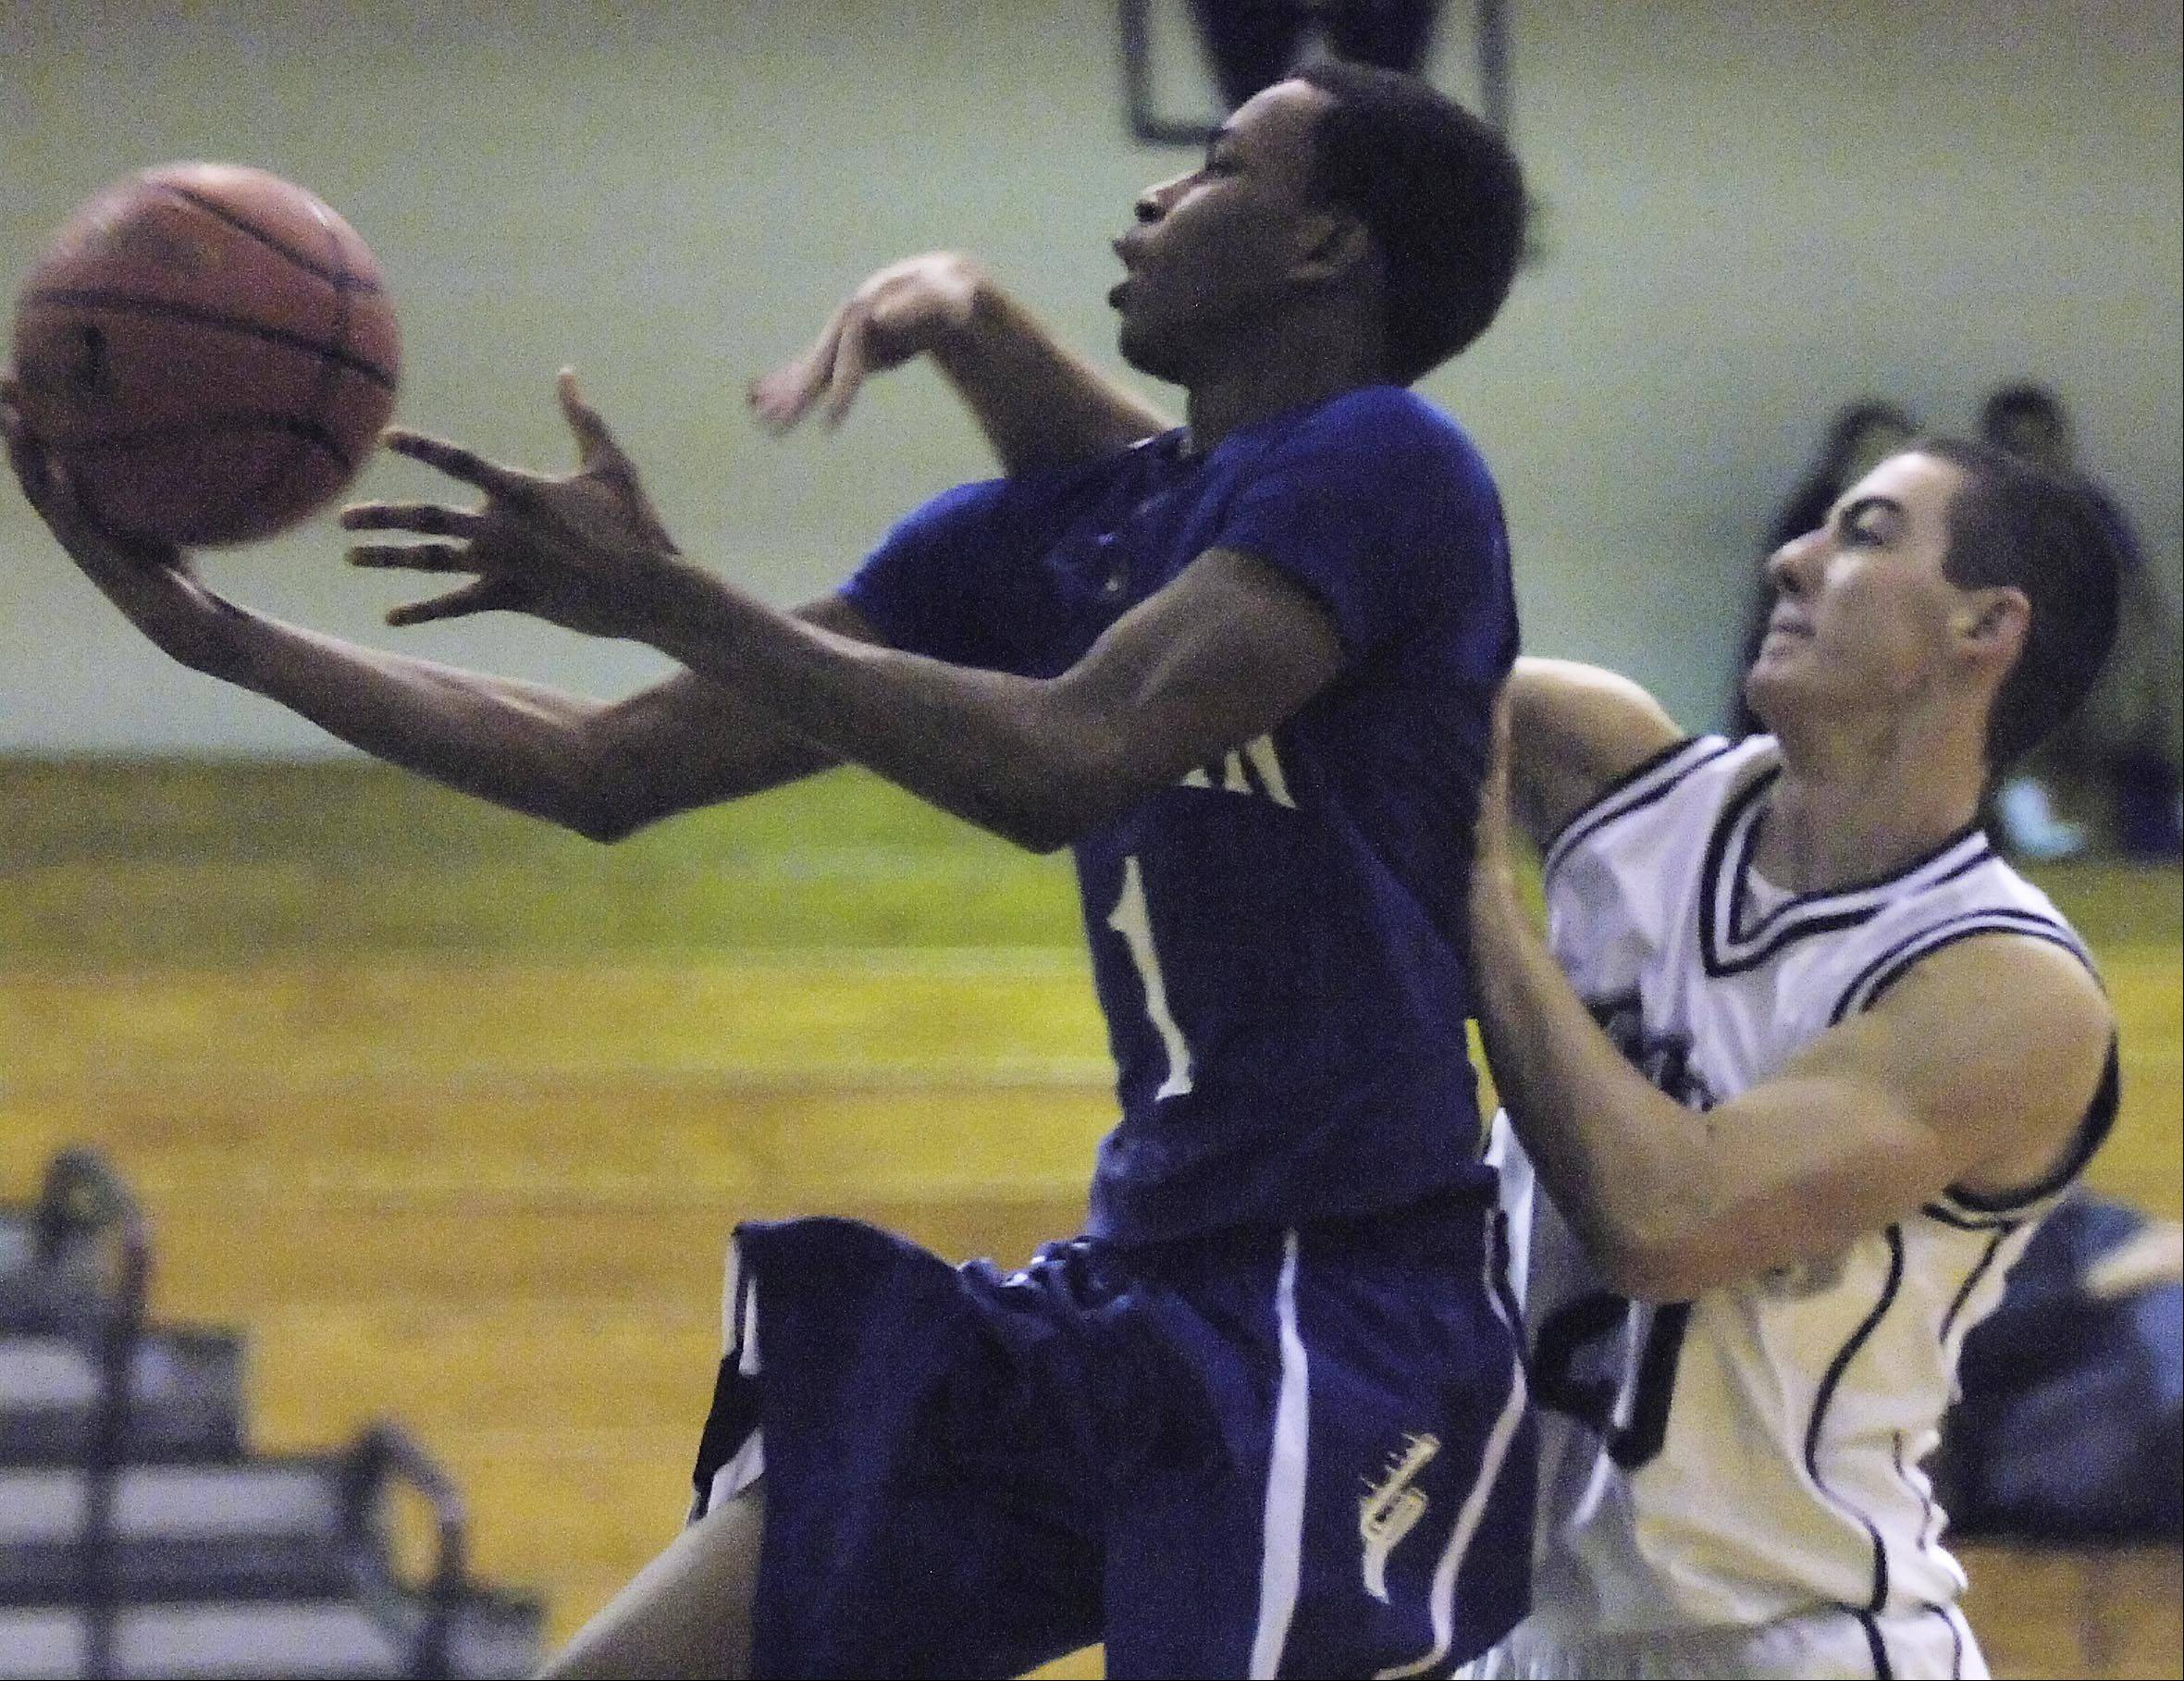 Cary-Grove's Clay Marunde fouls Larkin's Quantice Hunter Tuesday in the Hoops for Healing Tournament in Woodstock.